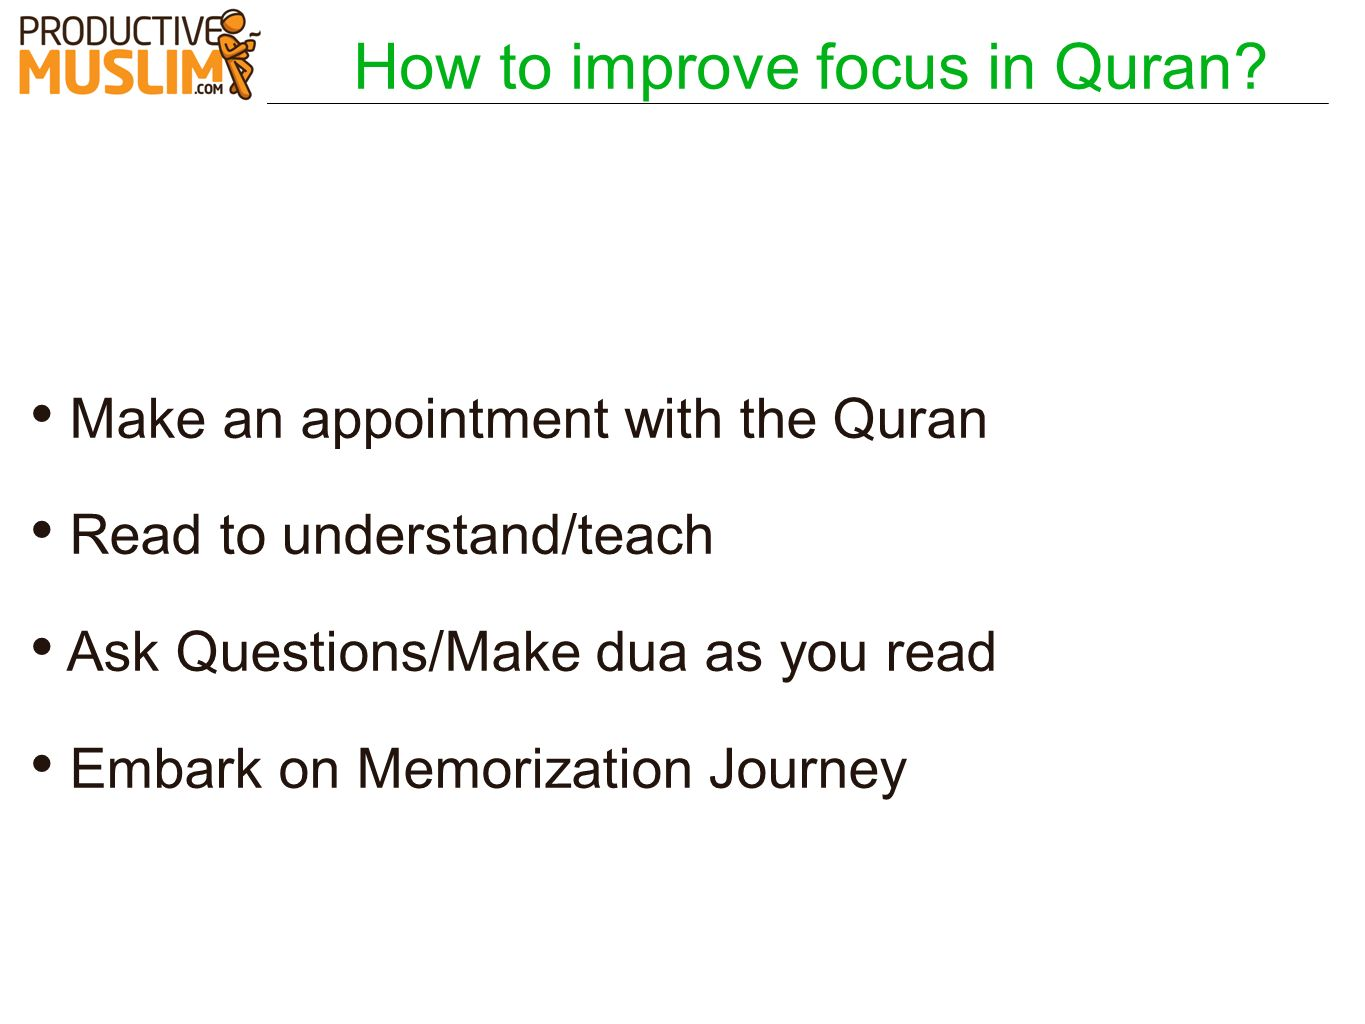 How to improve focus in Quran